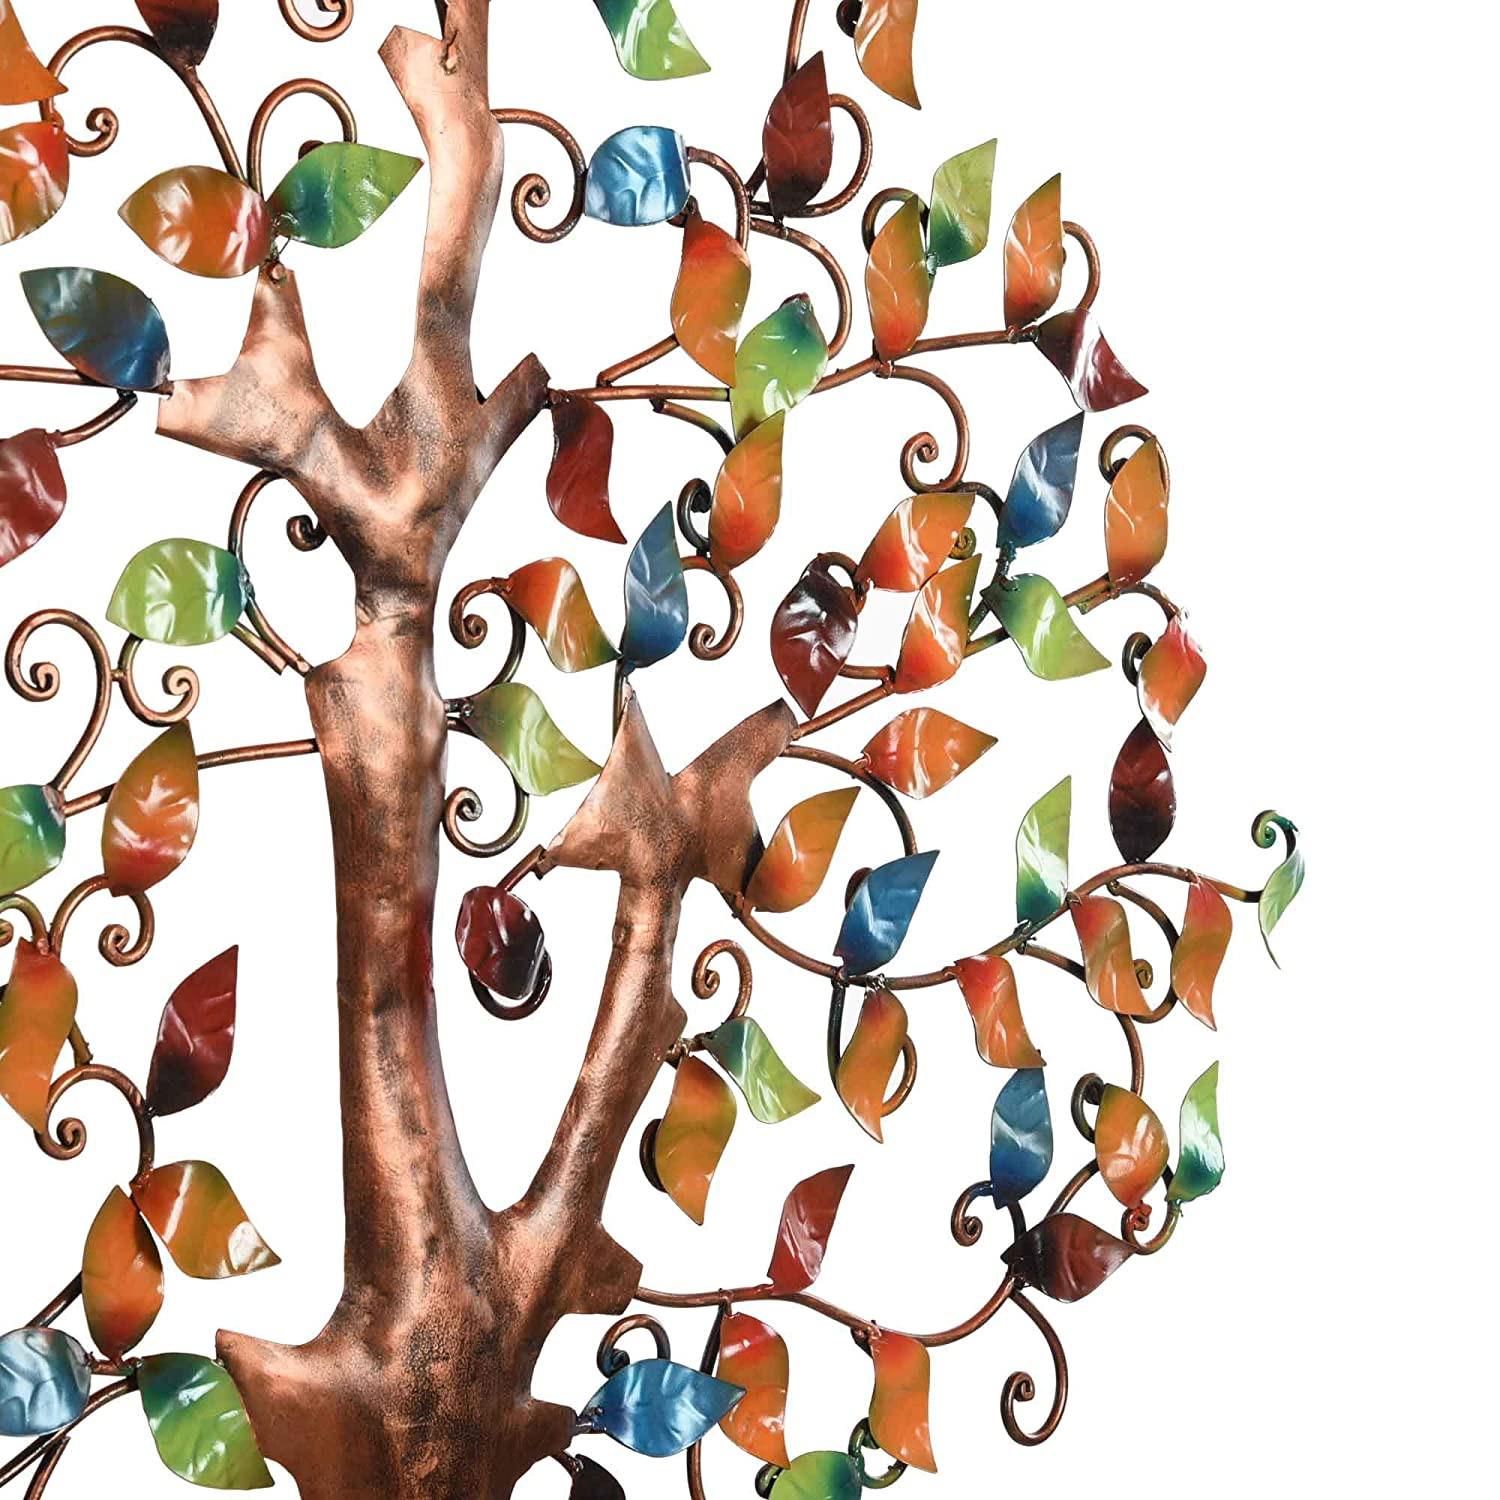 Tree Of Wisdom & Life Wall Hanging Art Birds On Branches Decor Sculpture